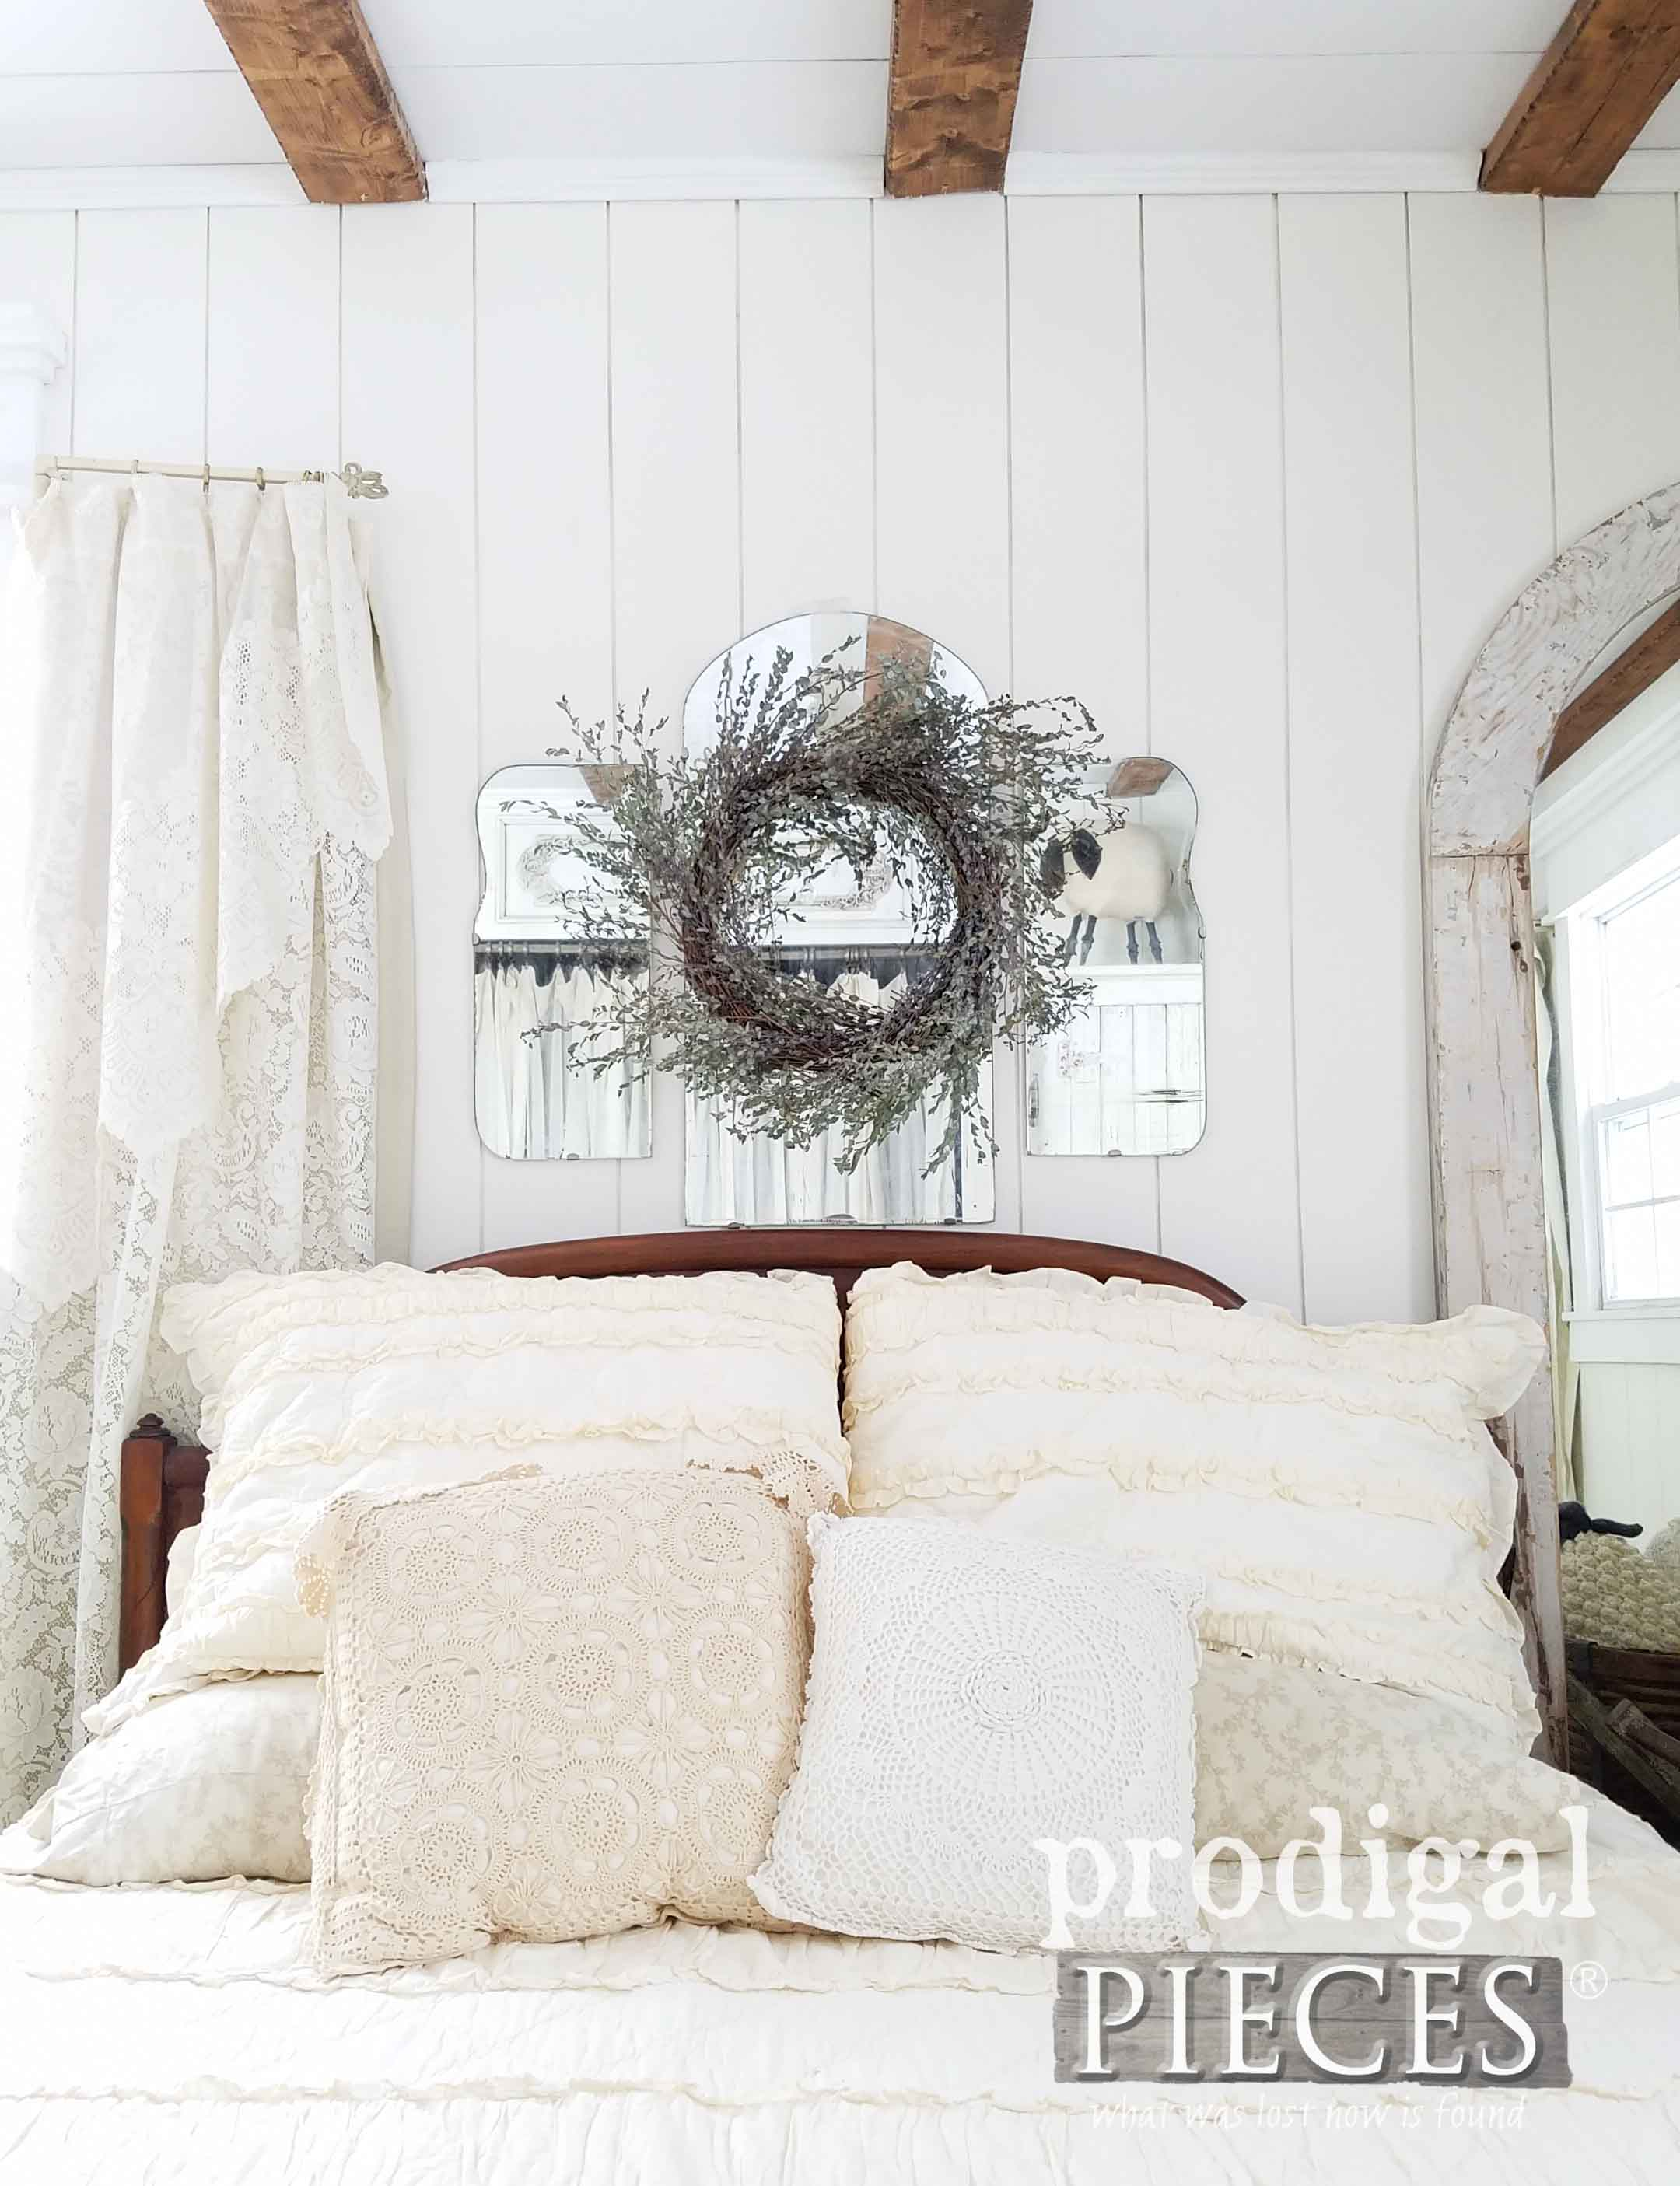 Farmhouse Bedroom Made Complete with DIY tutorials at Prodigal Pieces | prodigalpieces.com